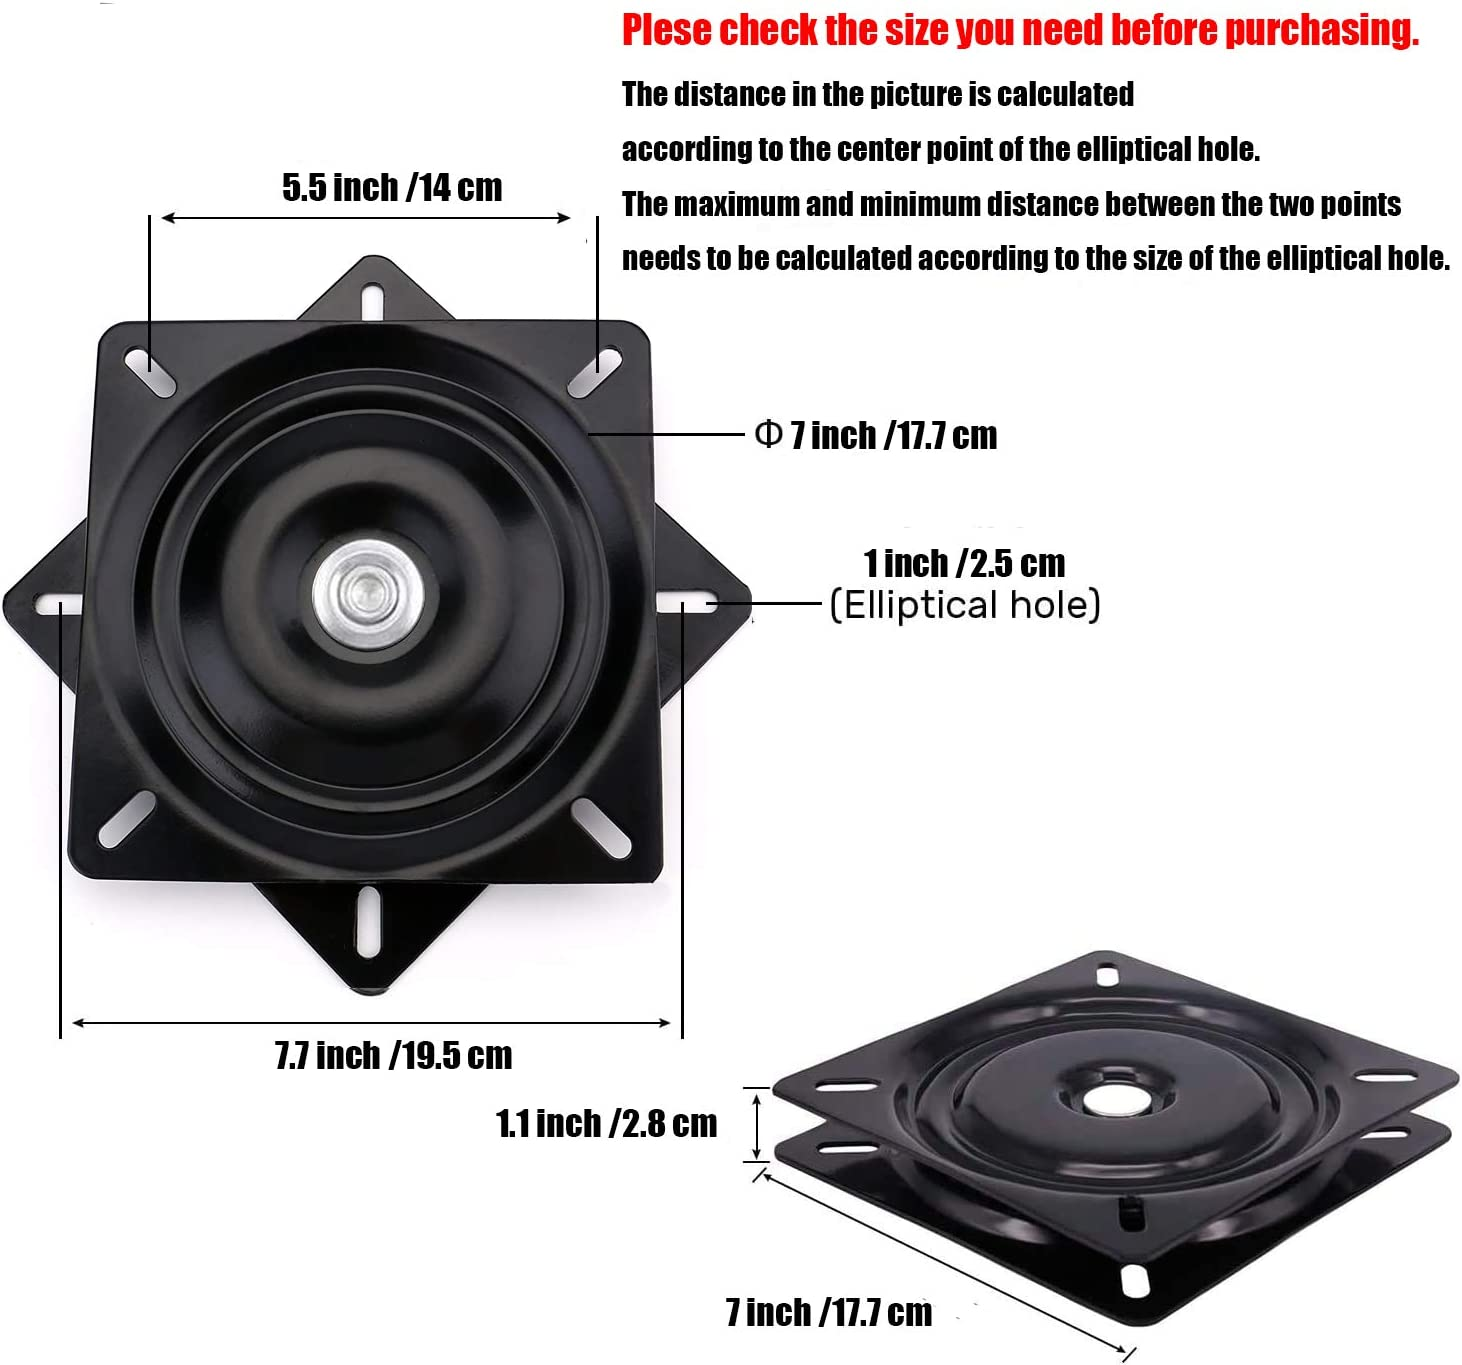 Seat Swivel Base Mount Plate for Bar Stool, Chair, 400-lb Load Capacity 7INCH